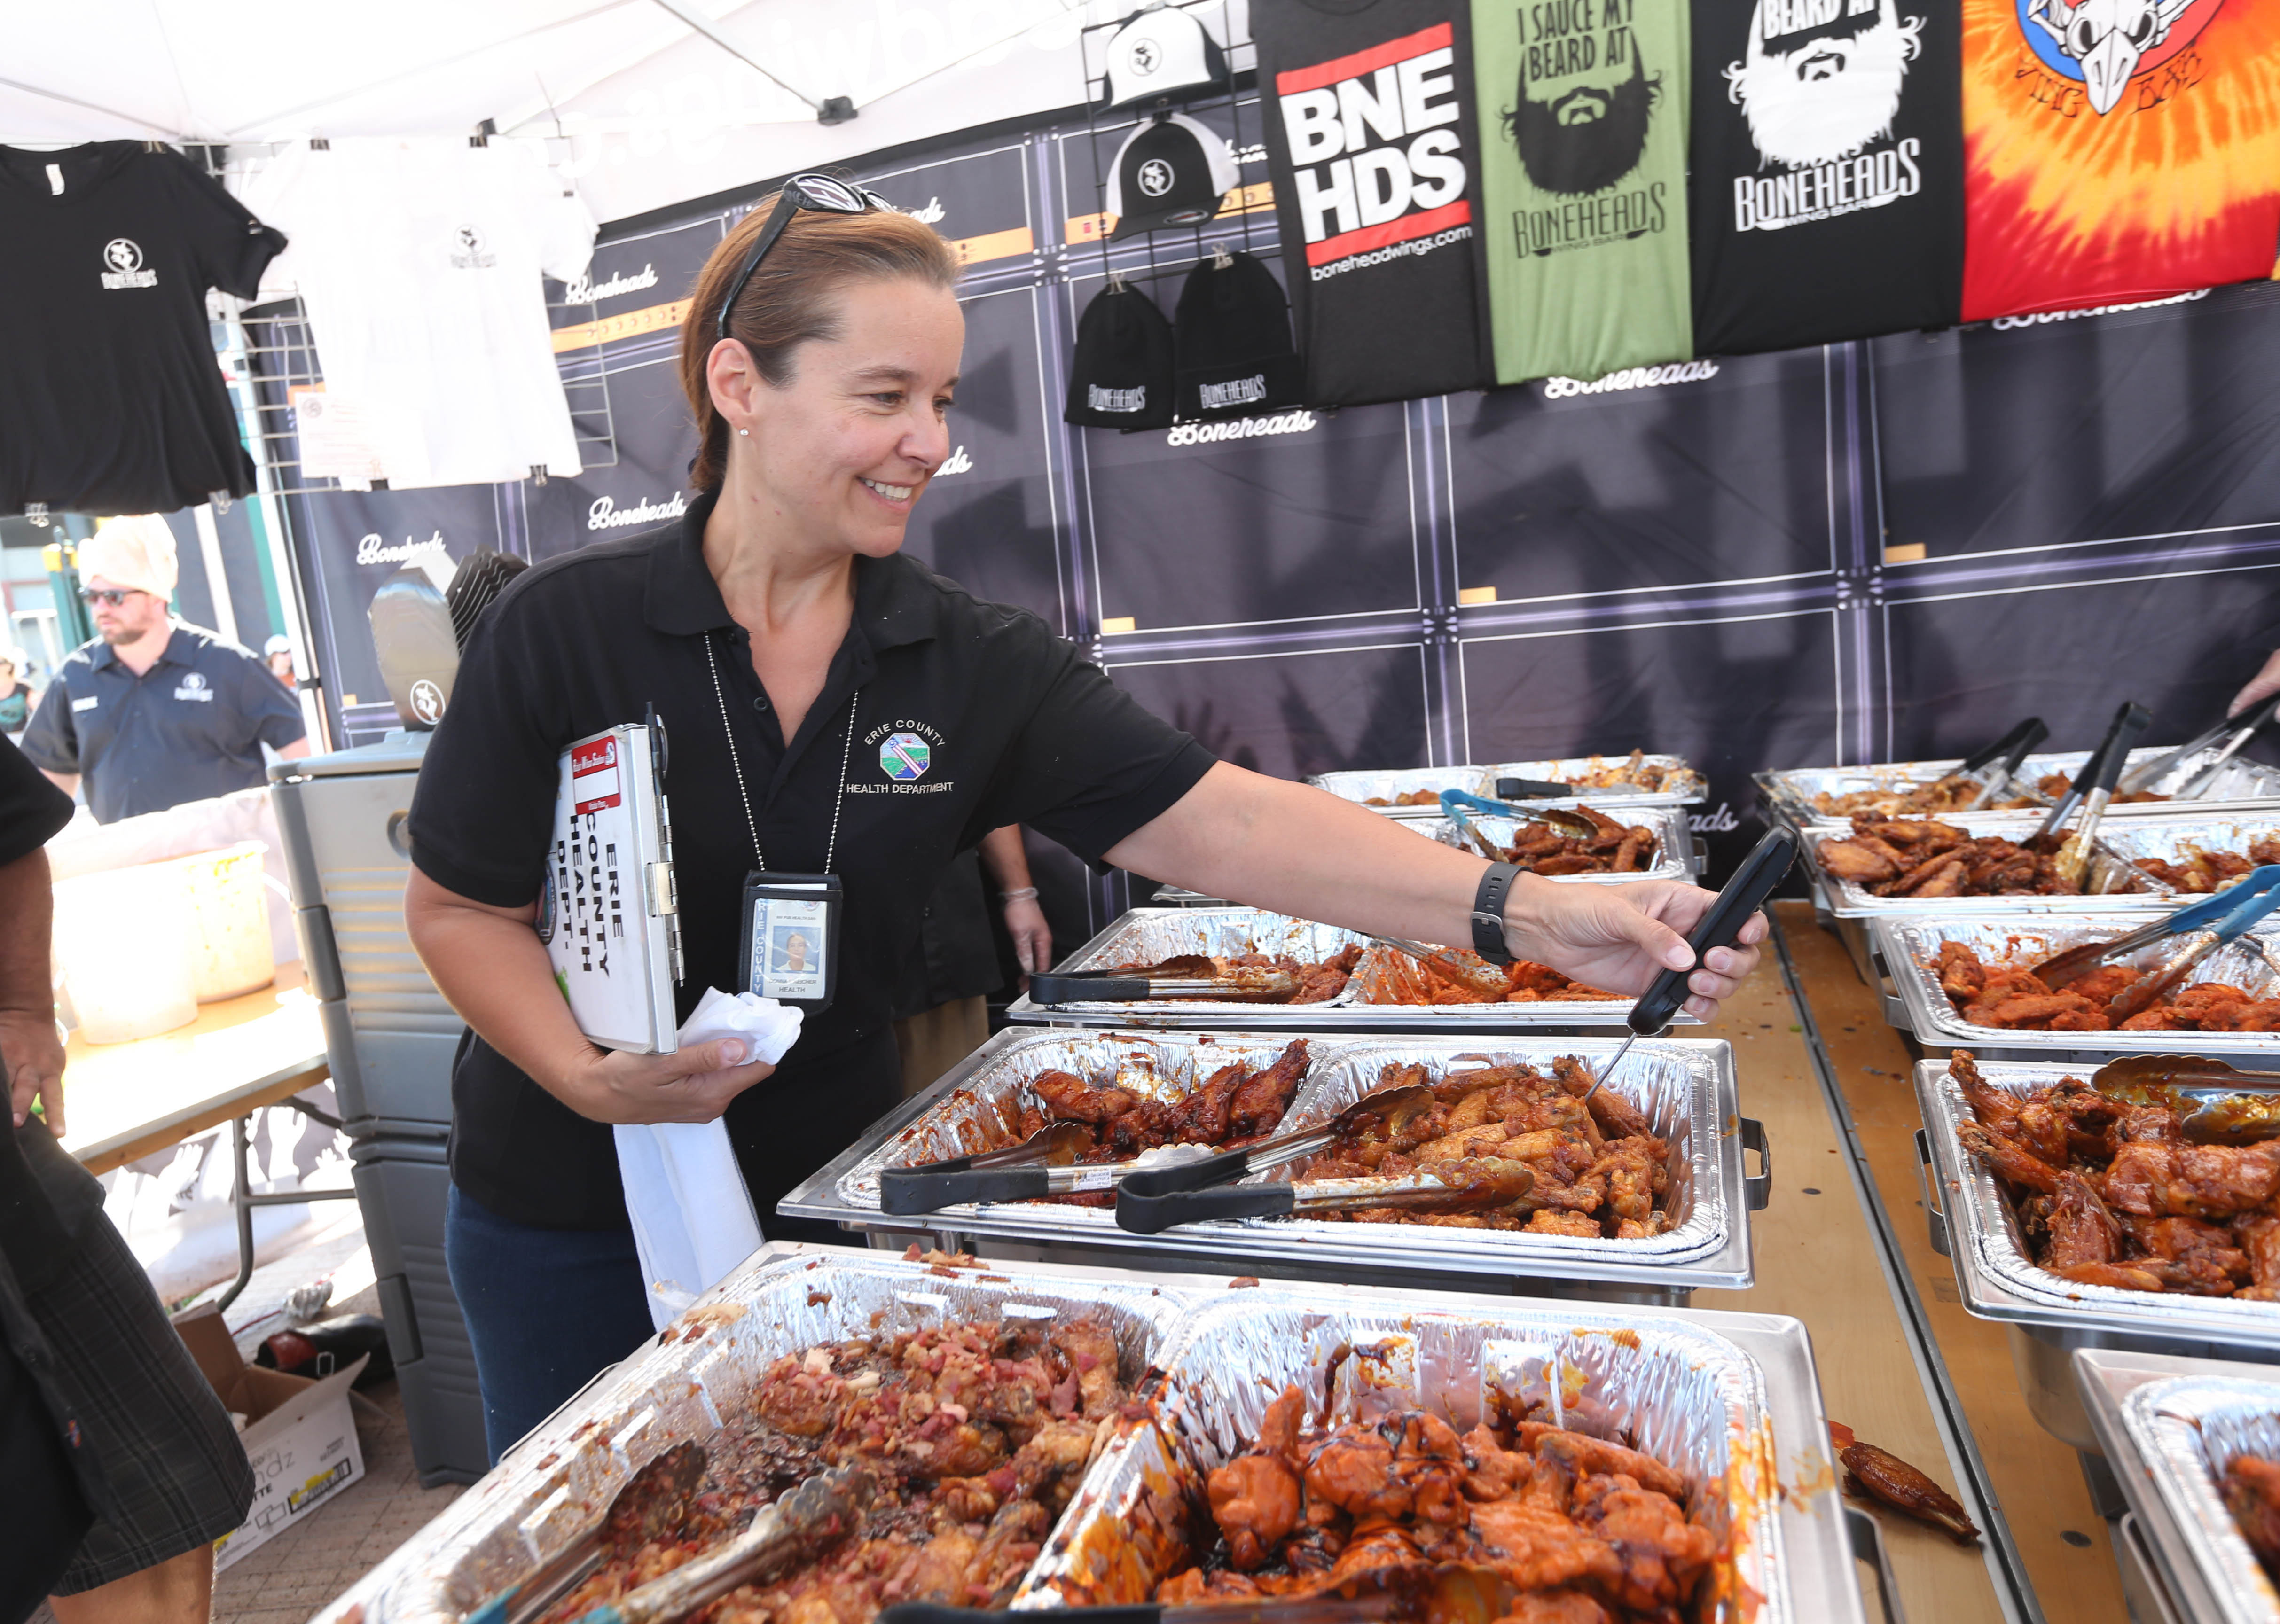 County Health Department Inspector Donna Keicher takes the temperature of wings at a stand operated by Boneheads Wing Bar, from Rhode Island. Temperature is a critical part of food safety. (Sharon Cantillon/Buffalo News)